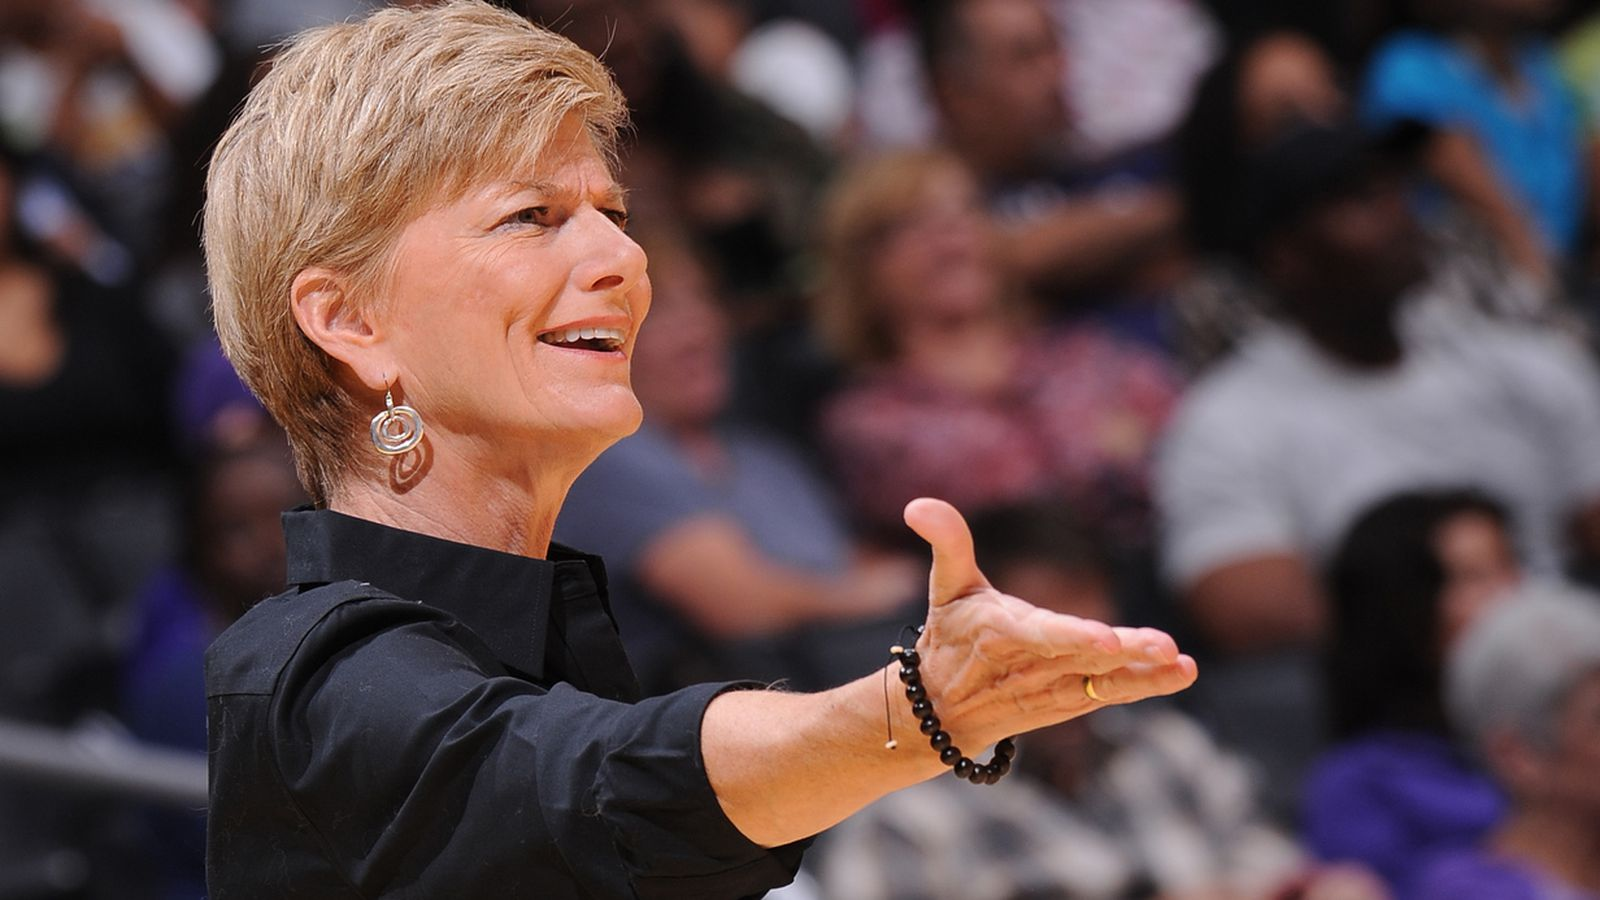 L.A. Sparks season storystream: Carol Ross out as head coach - Swish Appeal